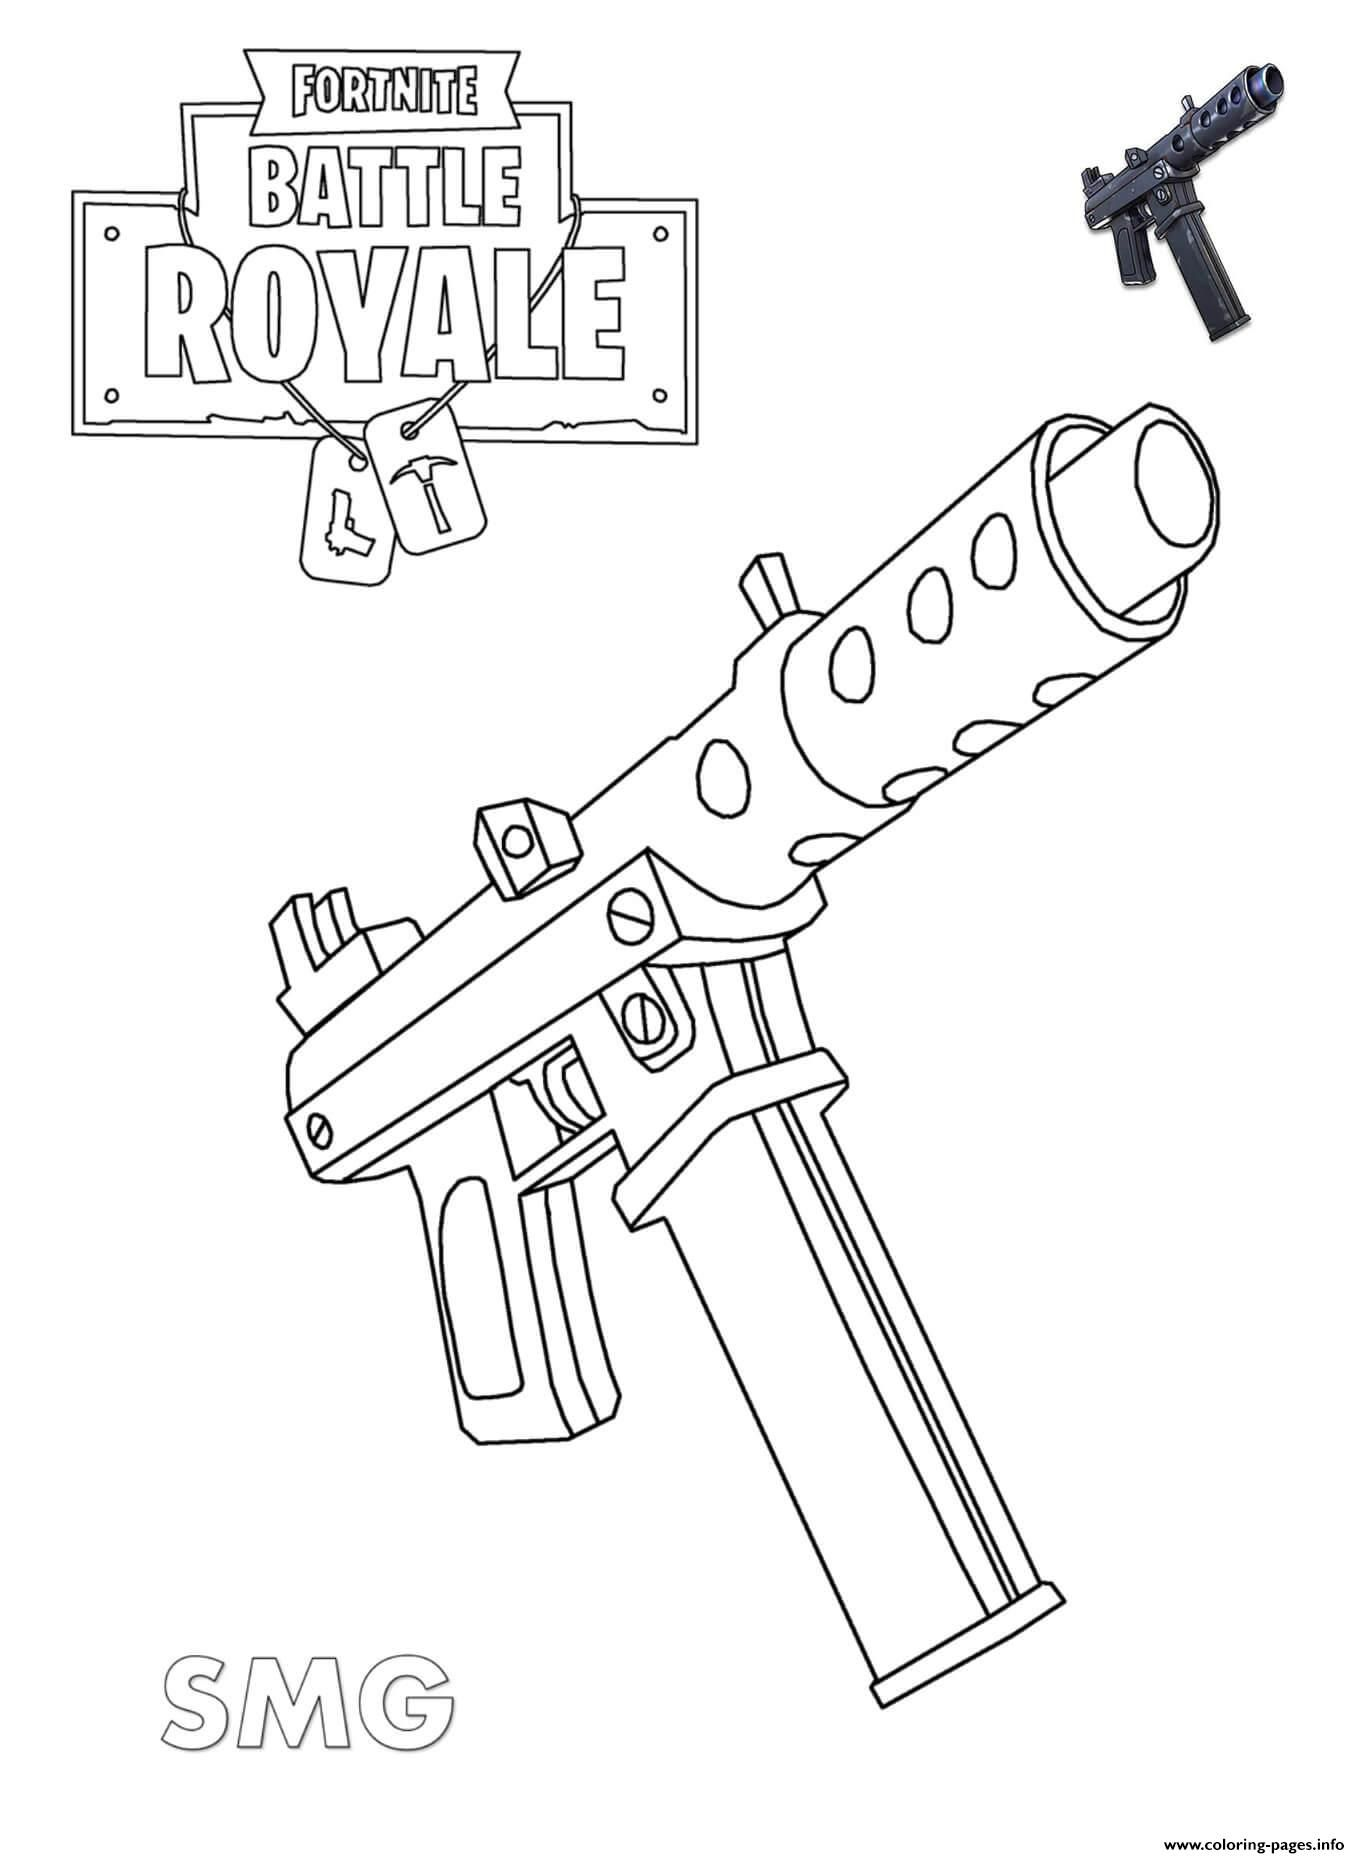 Print Machine Pistol Fortnite Coloring Pages